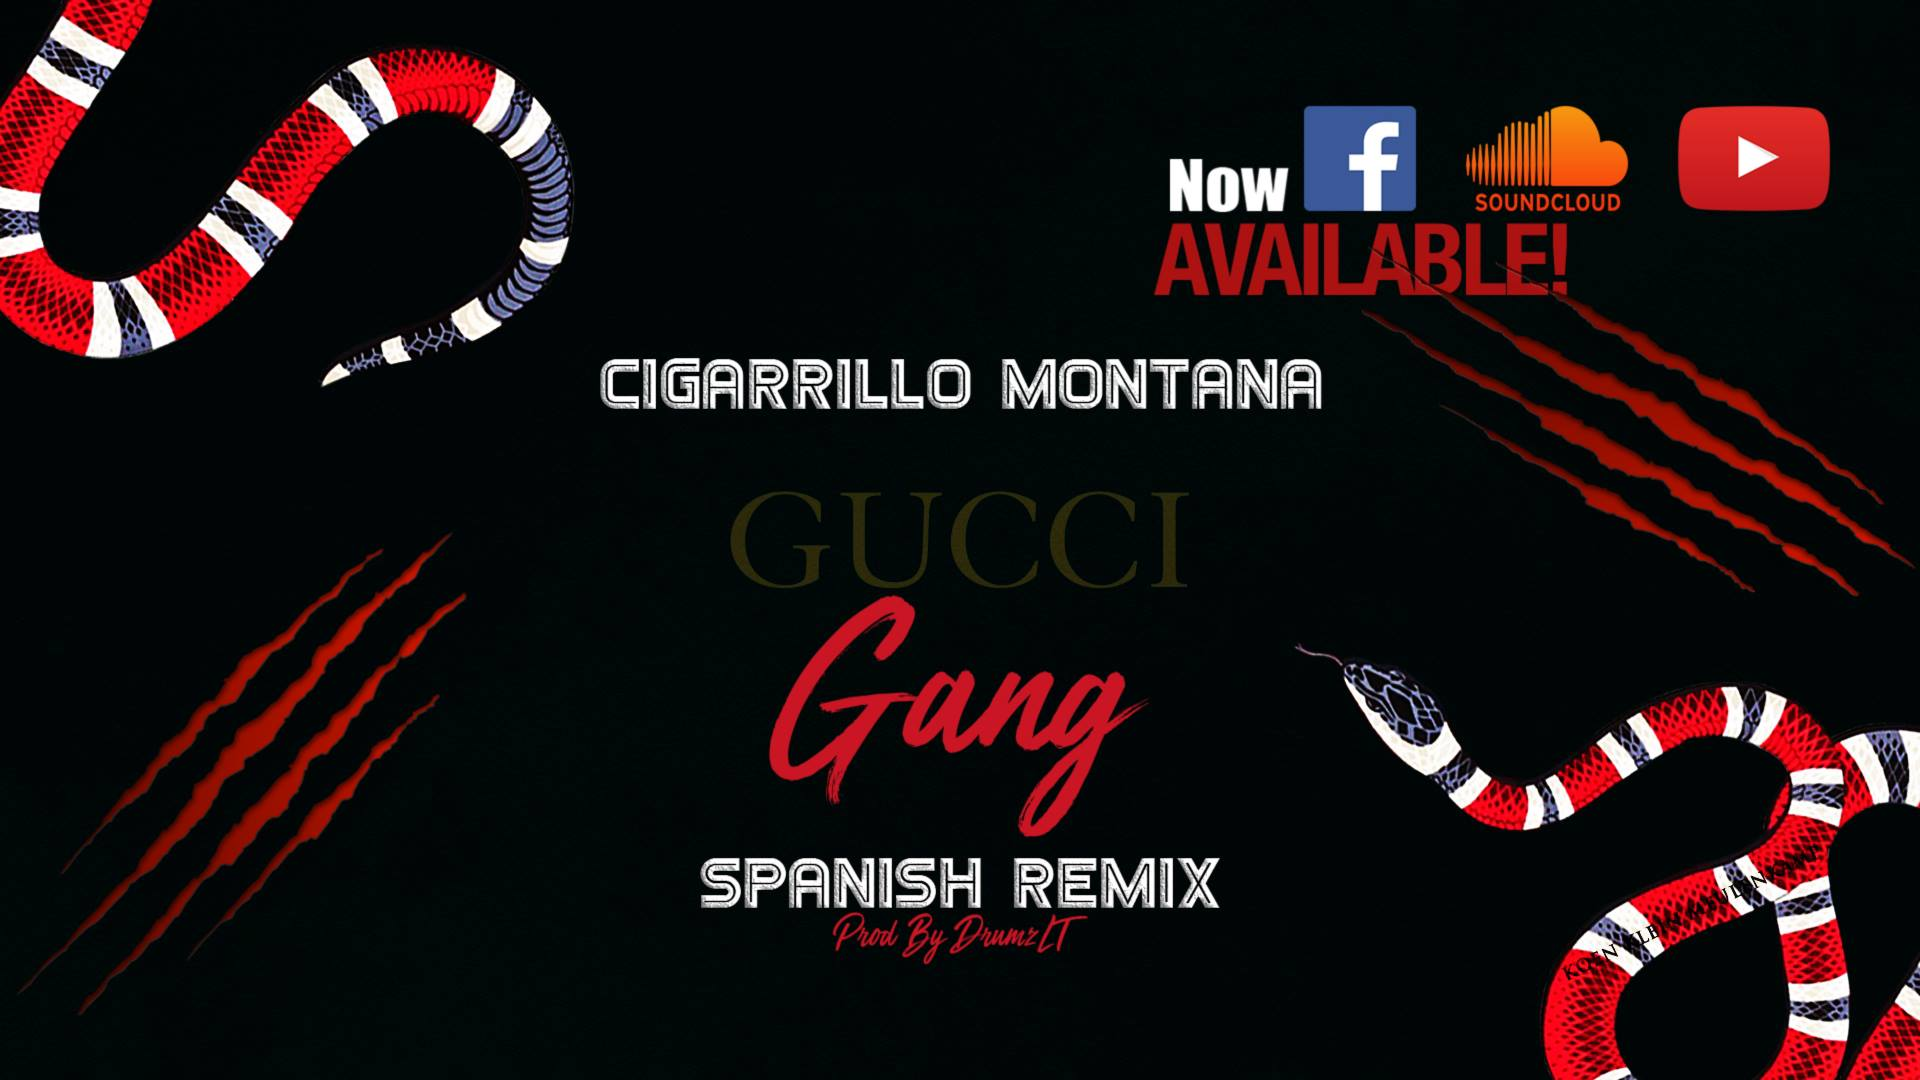 Cigarrillo Montana - Gucci Gang (Spanish Remix) (Prod By DrumzLT)